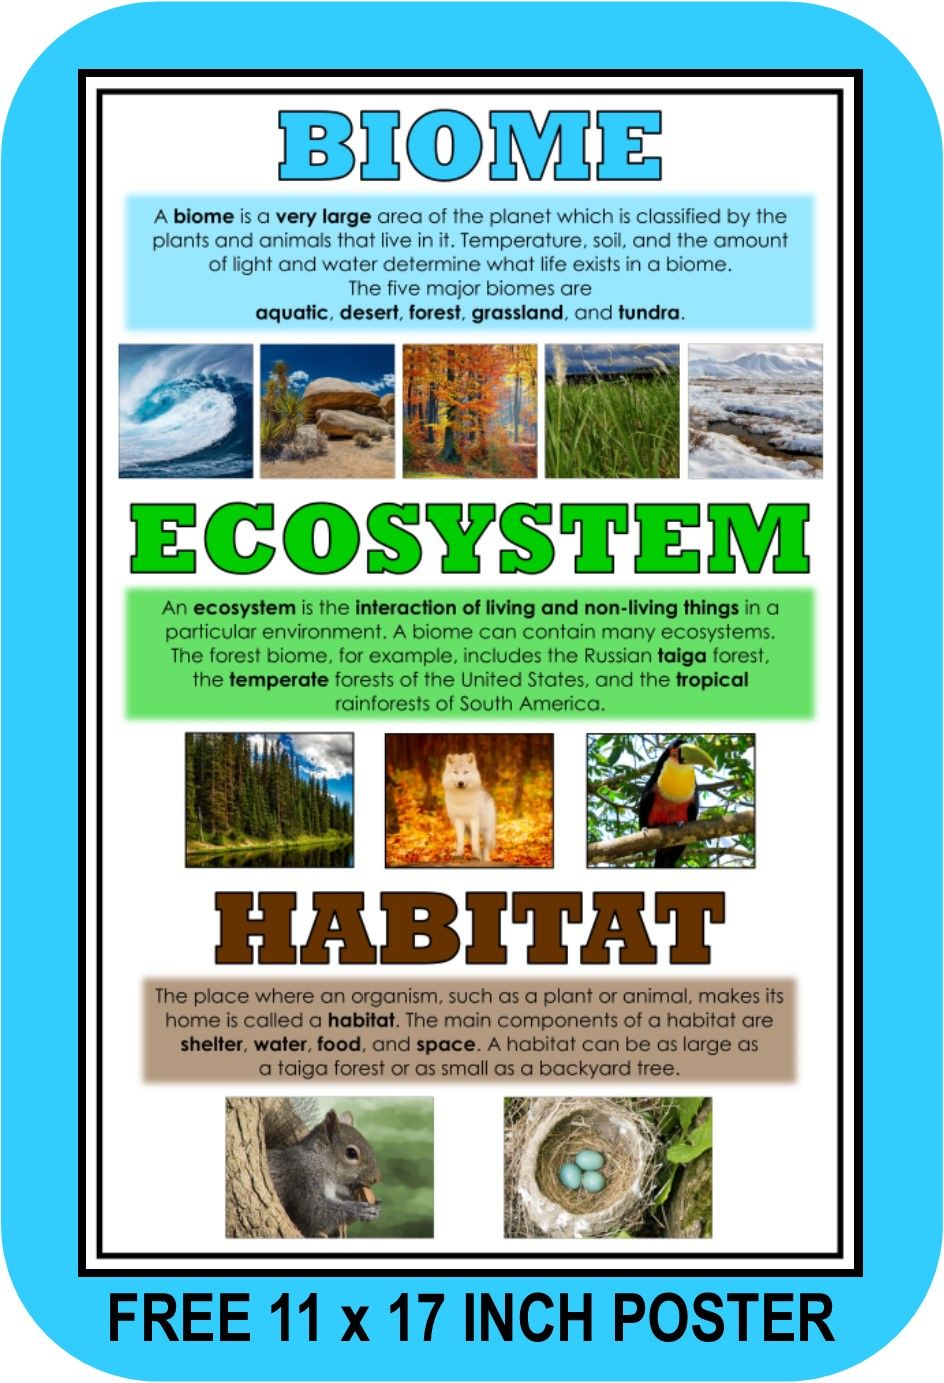 Introduce The Differences Between Biomes Ecosystems And Habitats With This Free Poster From Let S Get Real Biomes Teaching Biomes Ecosystems Projects [ 1383 x 944 Pixel ]